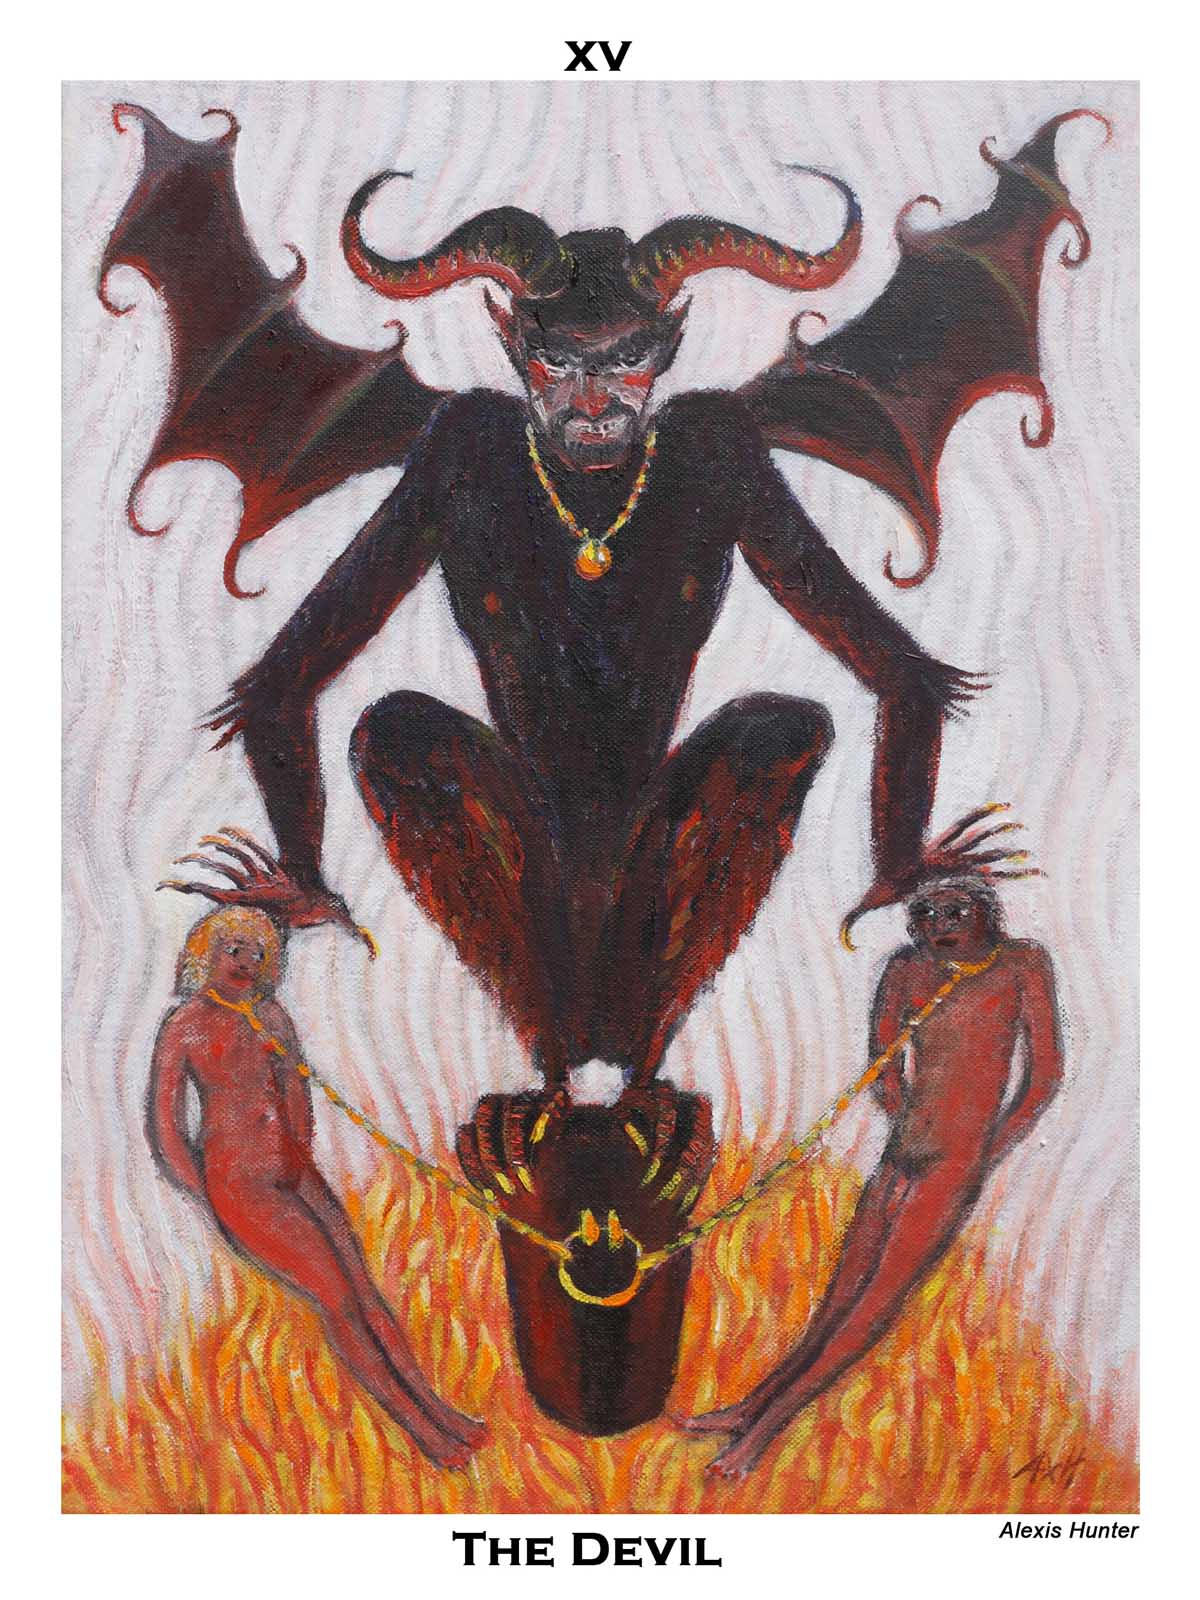 The Devil by Alexis Hunter